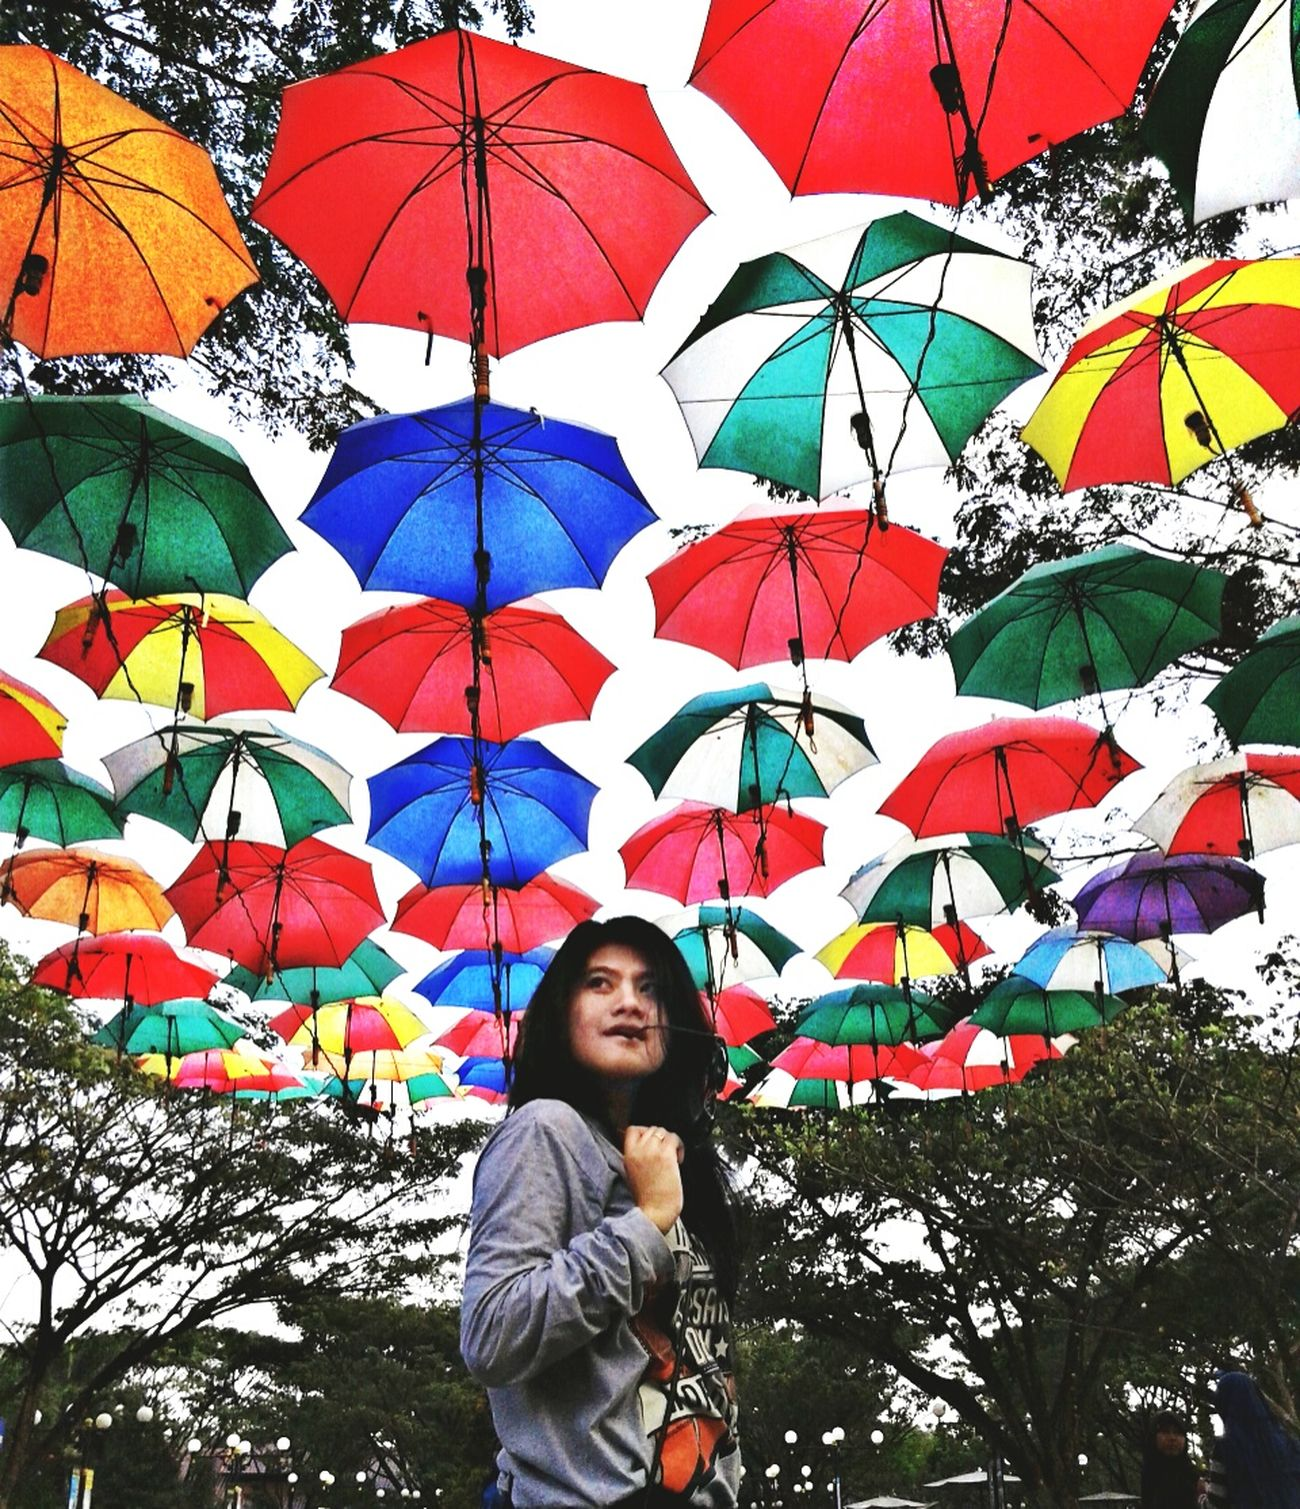 Under my umbrella, ella 🎤🌂Niceshots Taking Photos Indonesian Girl Enjoying Life Nice Day Amazing Place Beautiful Place Umbrella Under My Umbrella